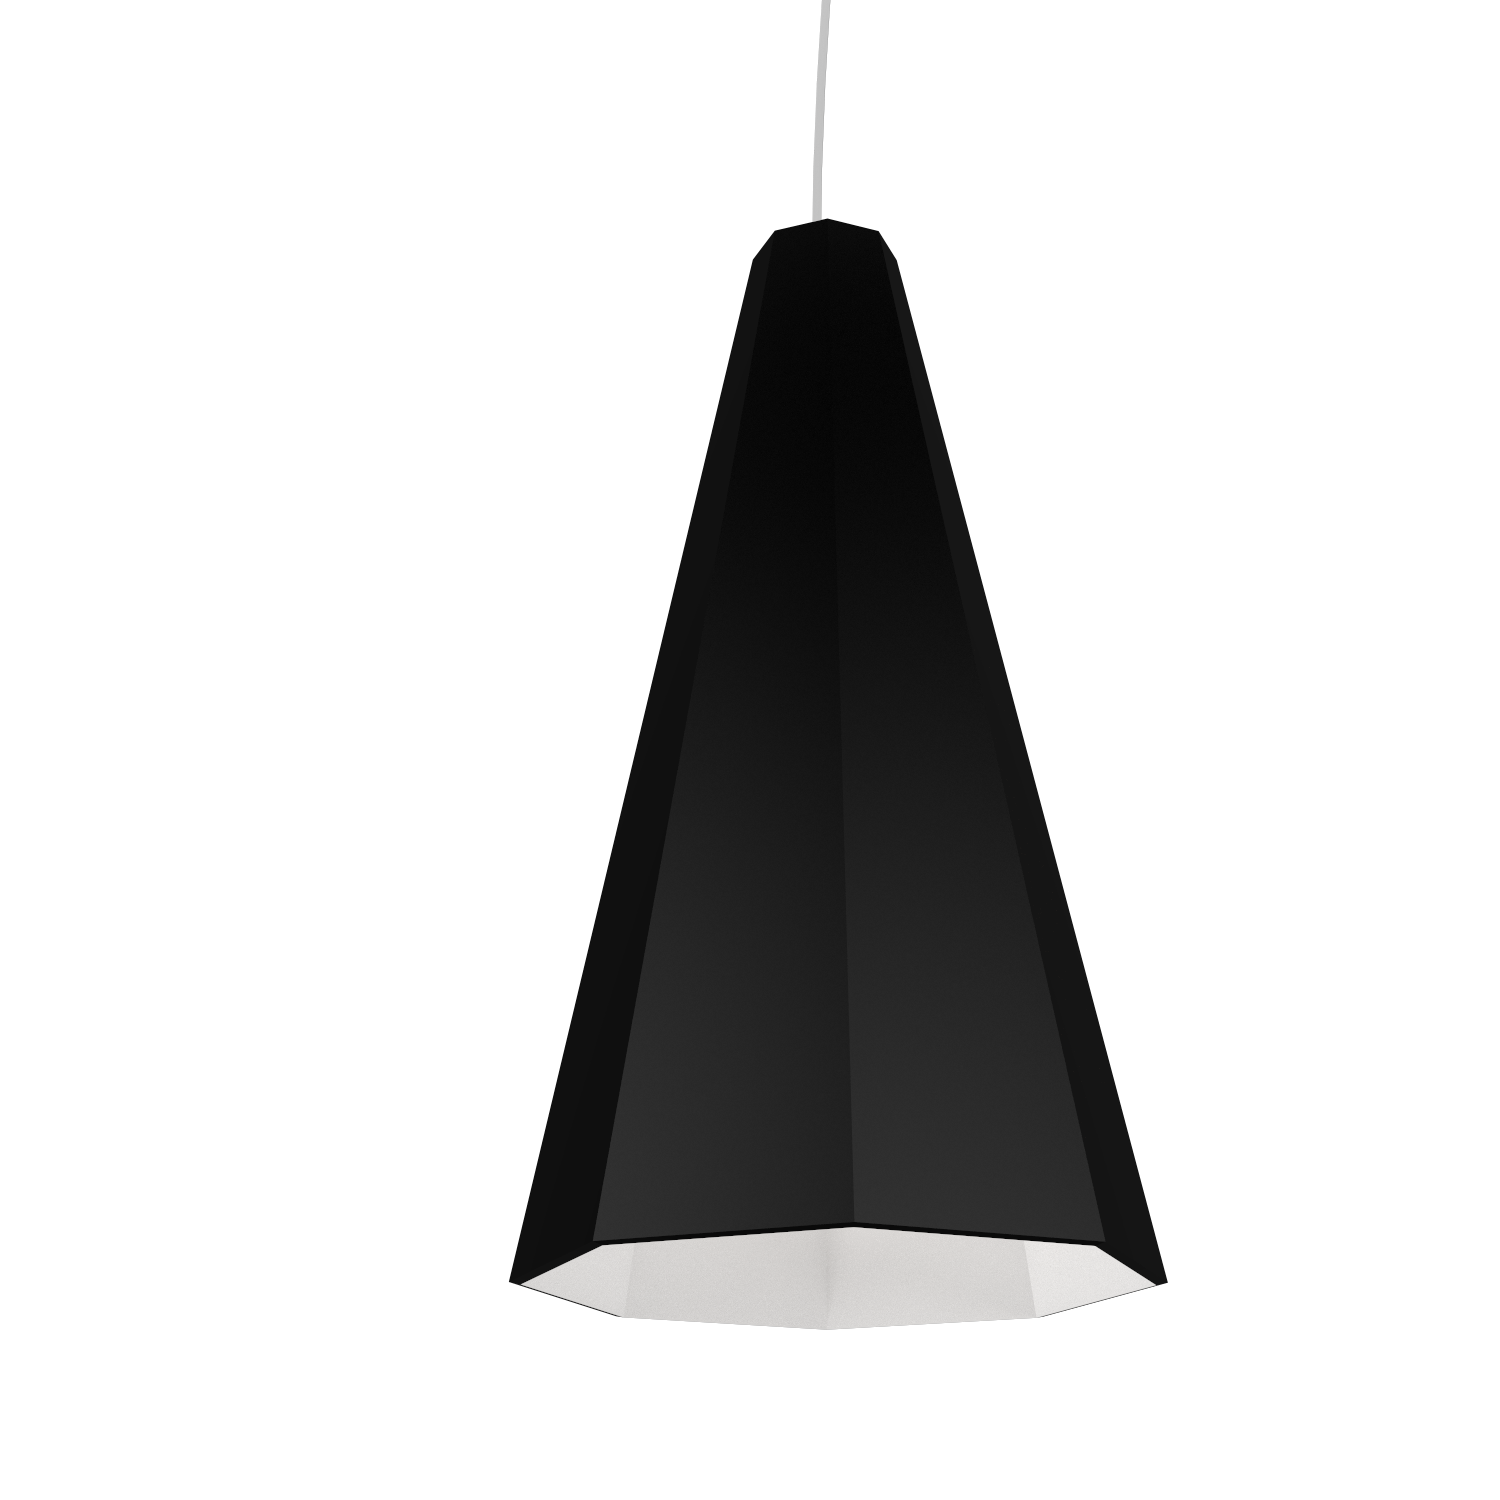 Pendant Lamp Accord Facetado 1231 - Facetada Line Accord Lighting | 02. Matte Black